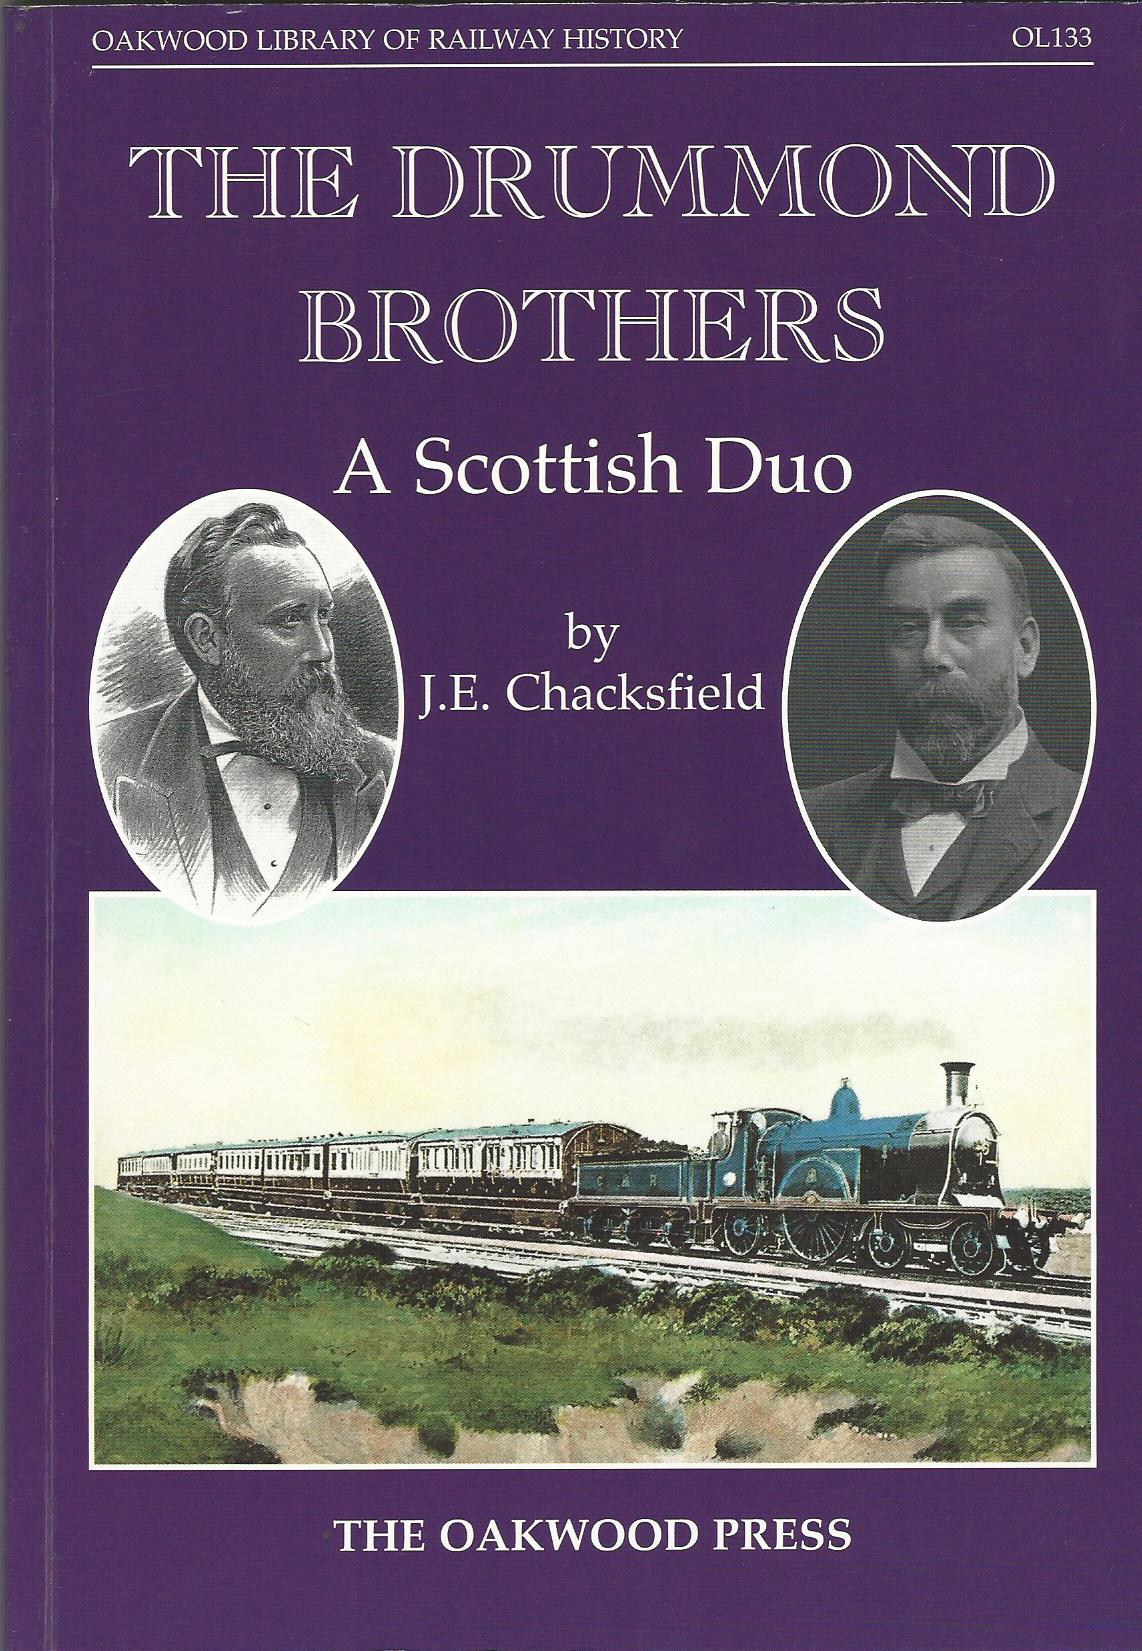 Image for The Drummond Brothers: A Scottish Duo (Oakwood Library of Railway History)